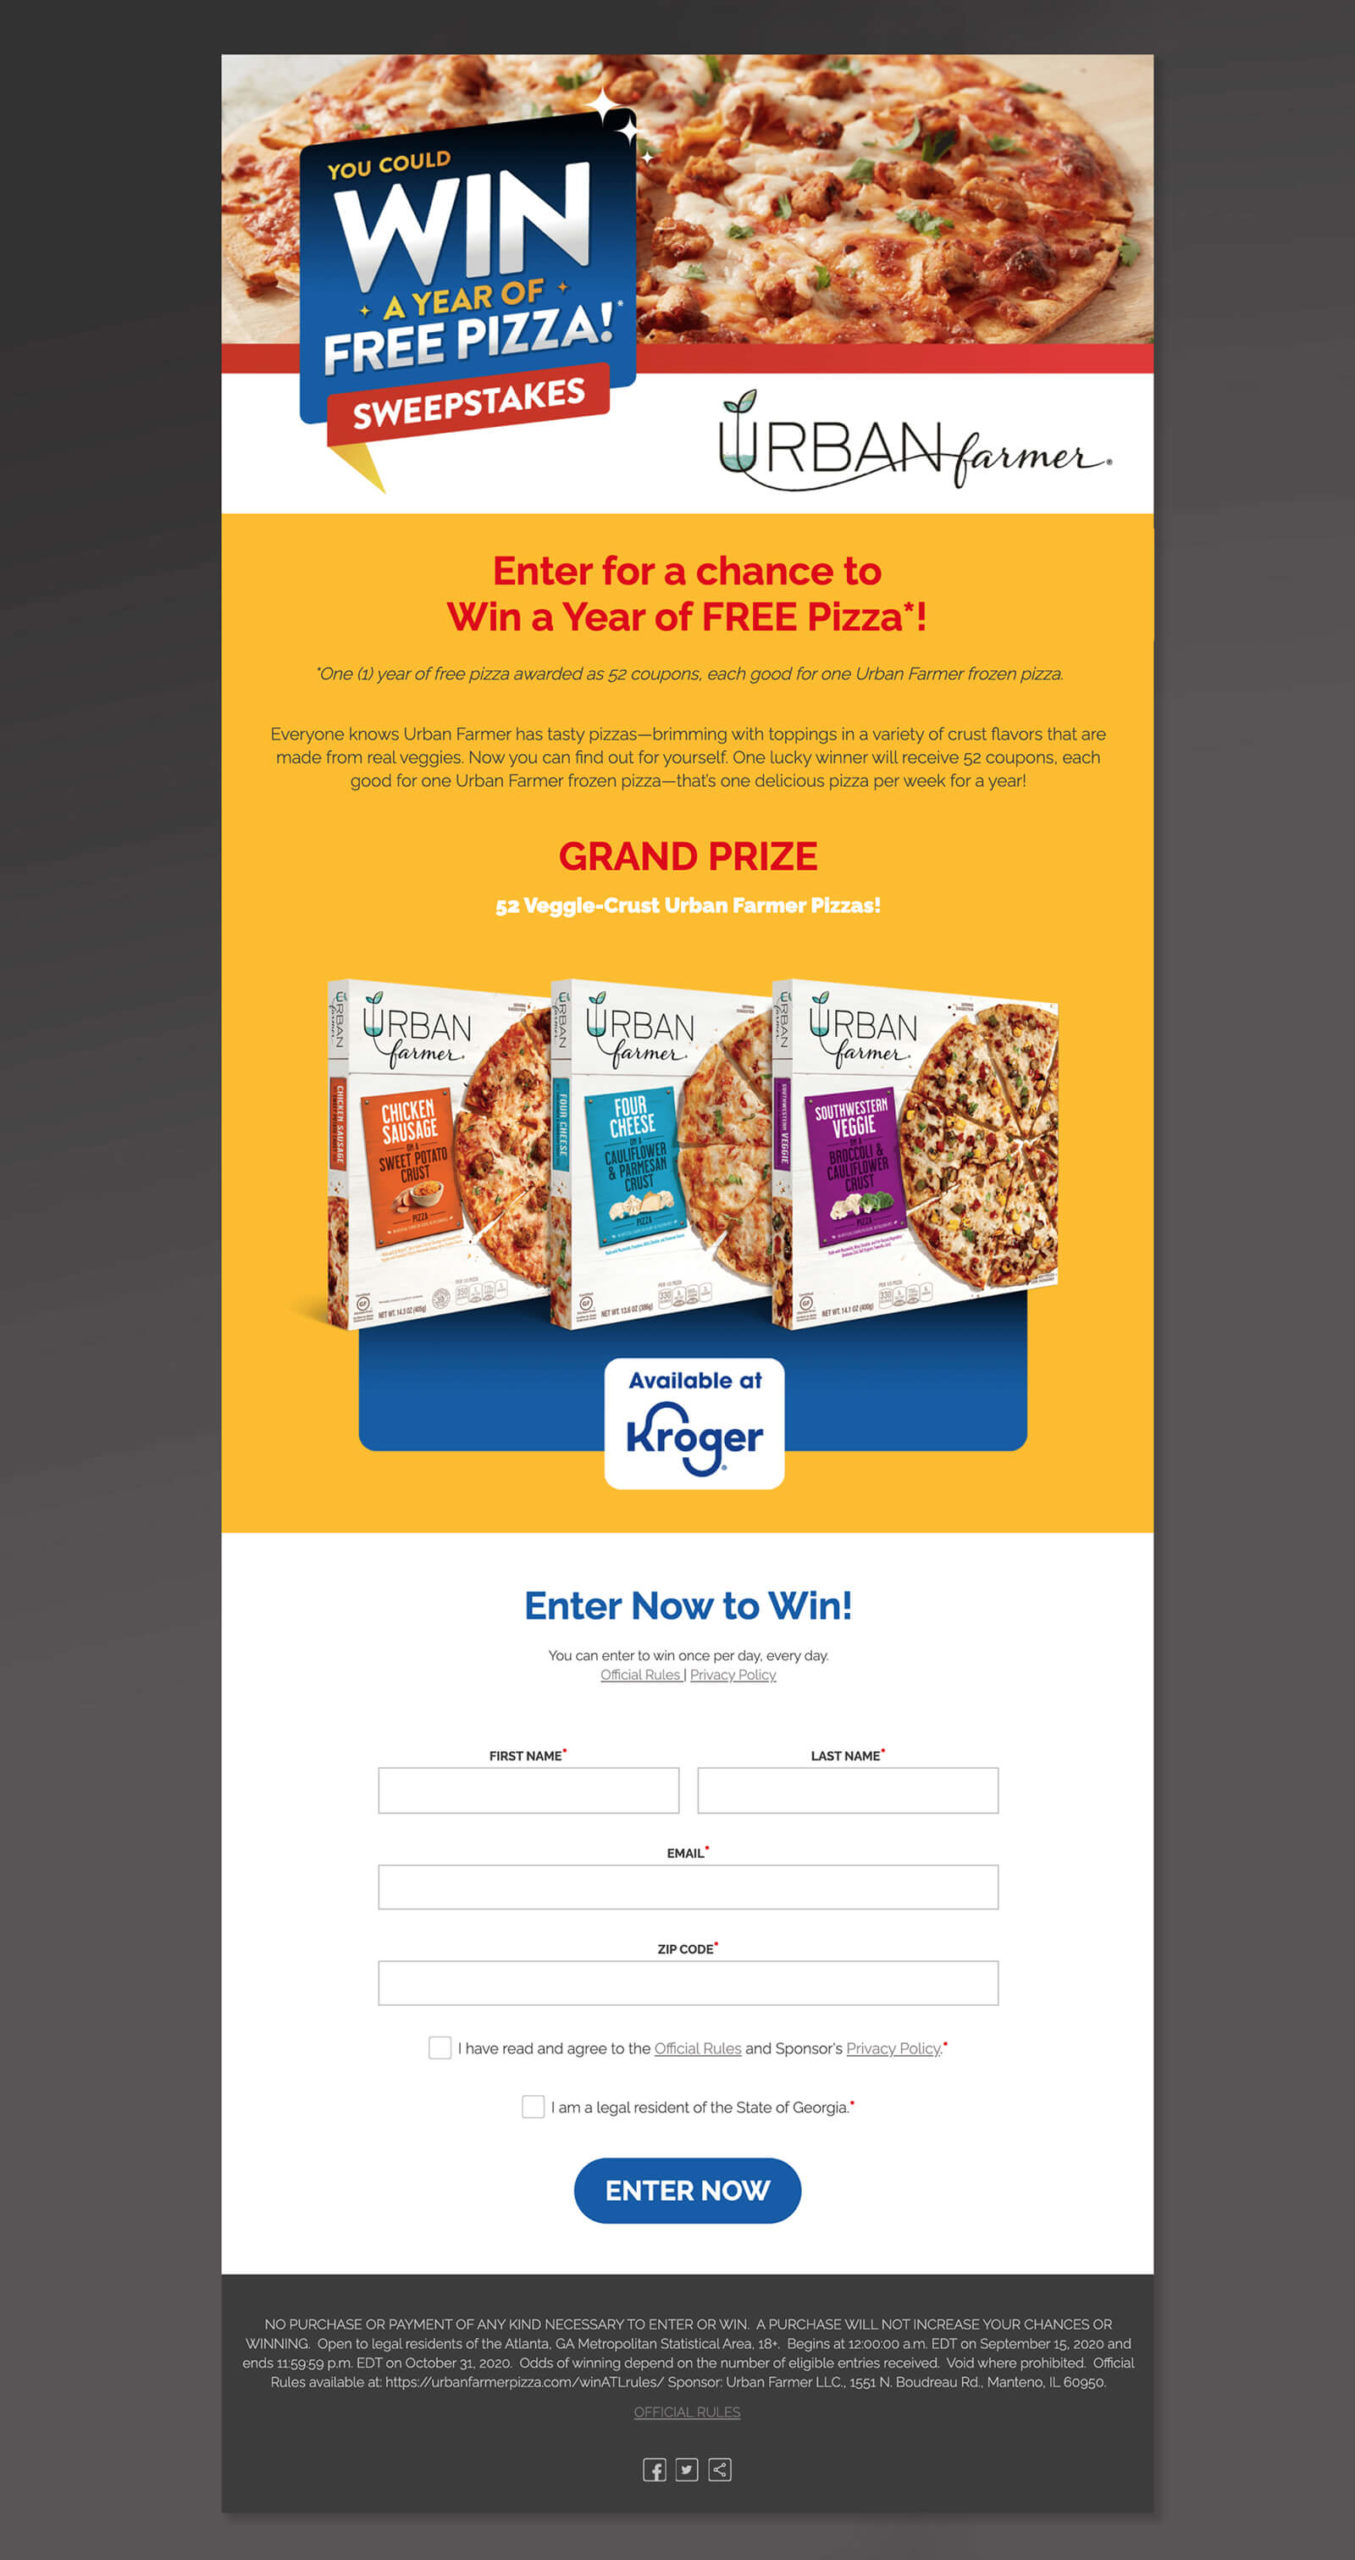 Win a year of free pizza - CPG Promotion for Frozen Pizza